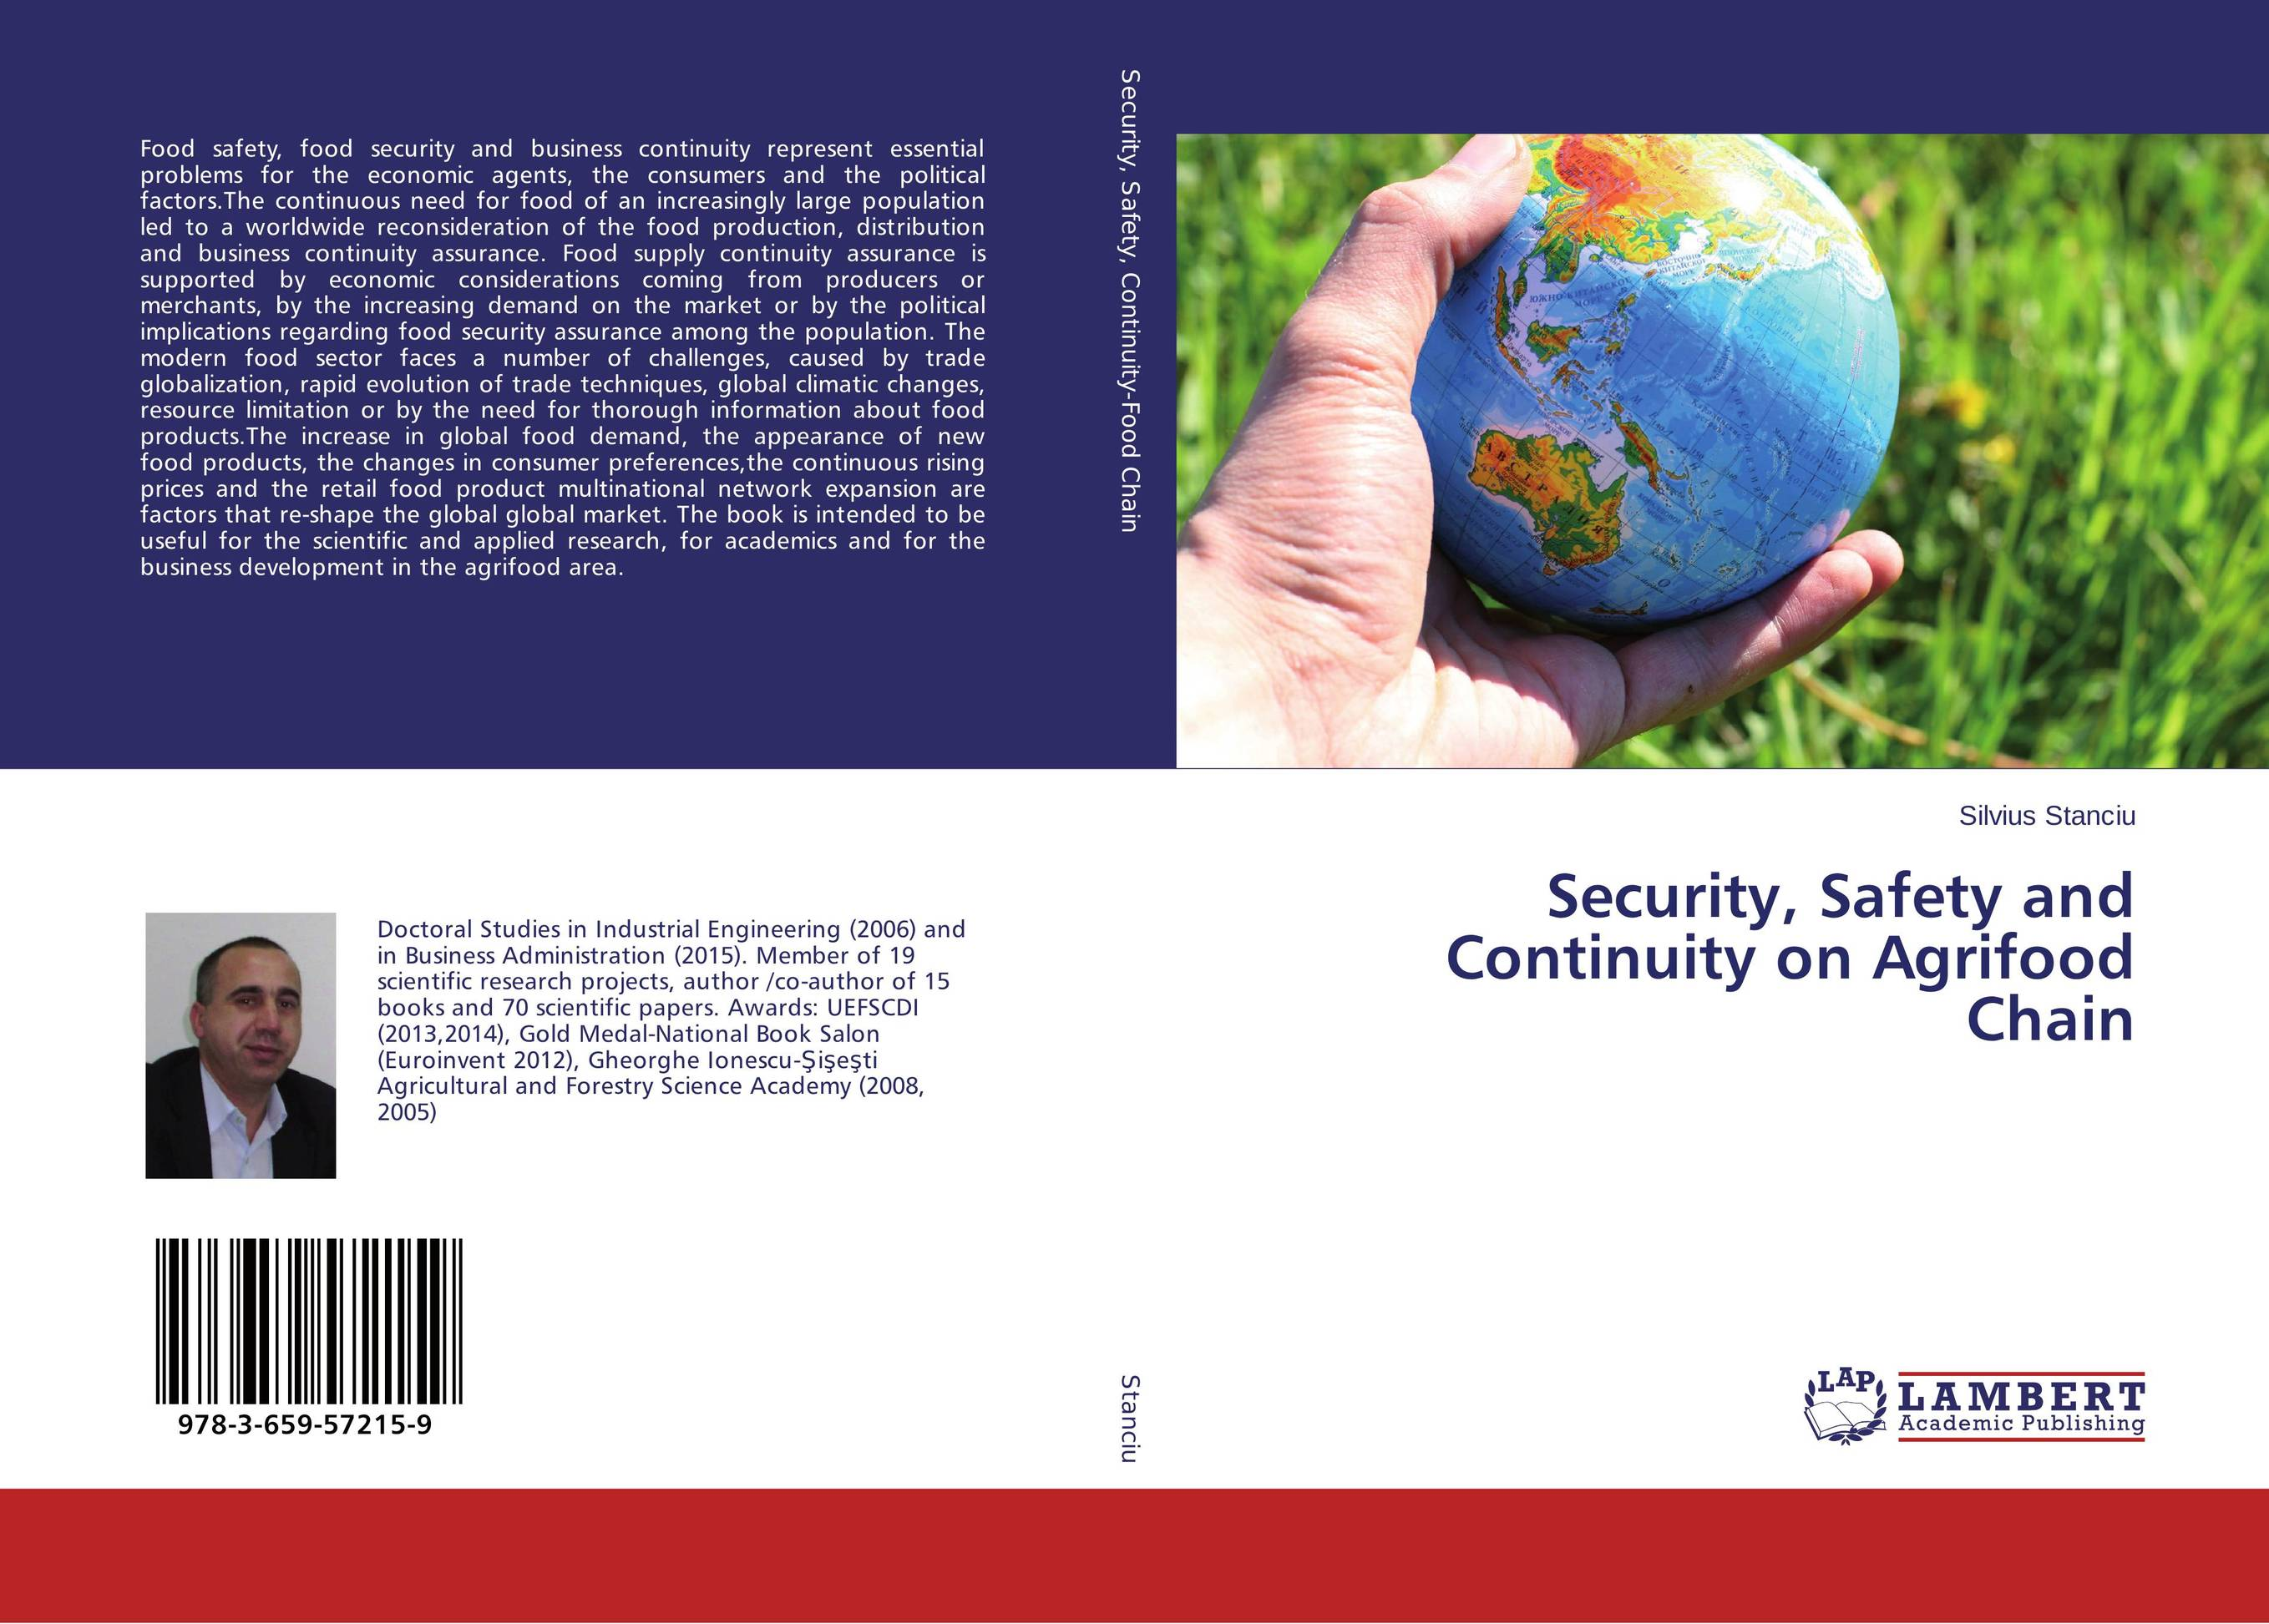 Security, Safety and Continuity on Agrifood Chain